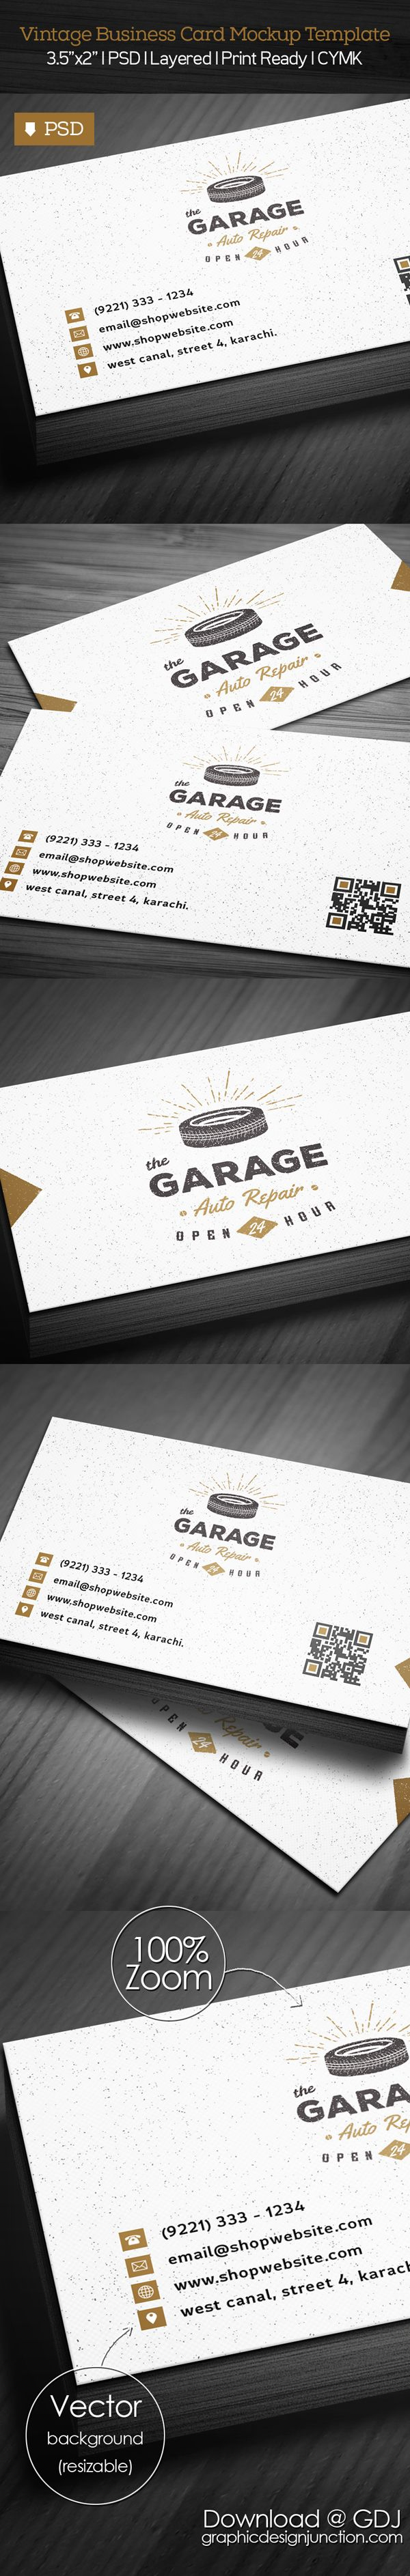 Free vintage business card psd template freebies graphic design free vintage business card psd template freebies graphic design junction reheart Image collections